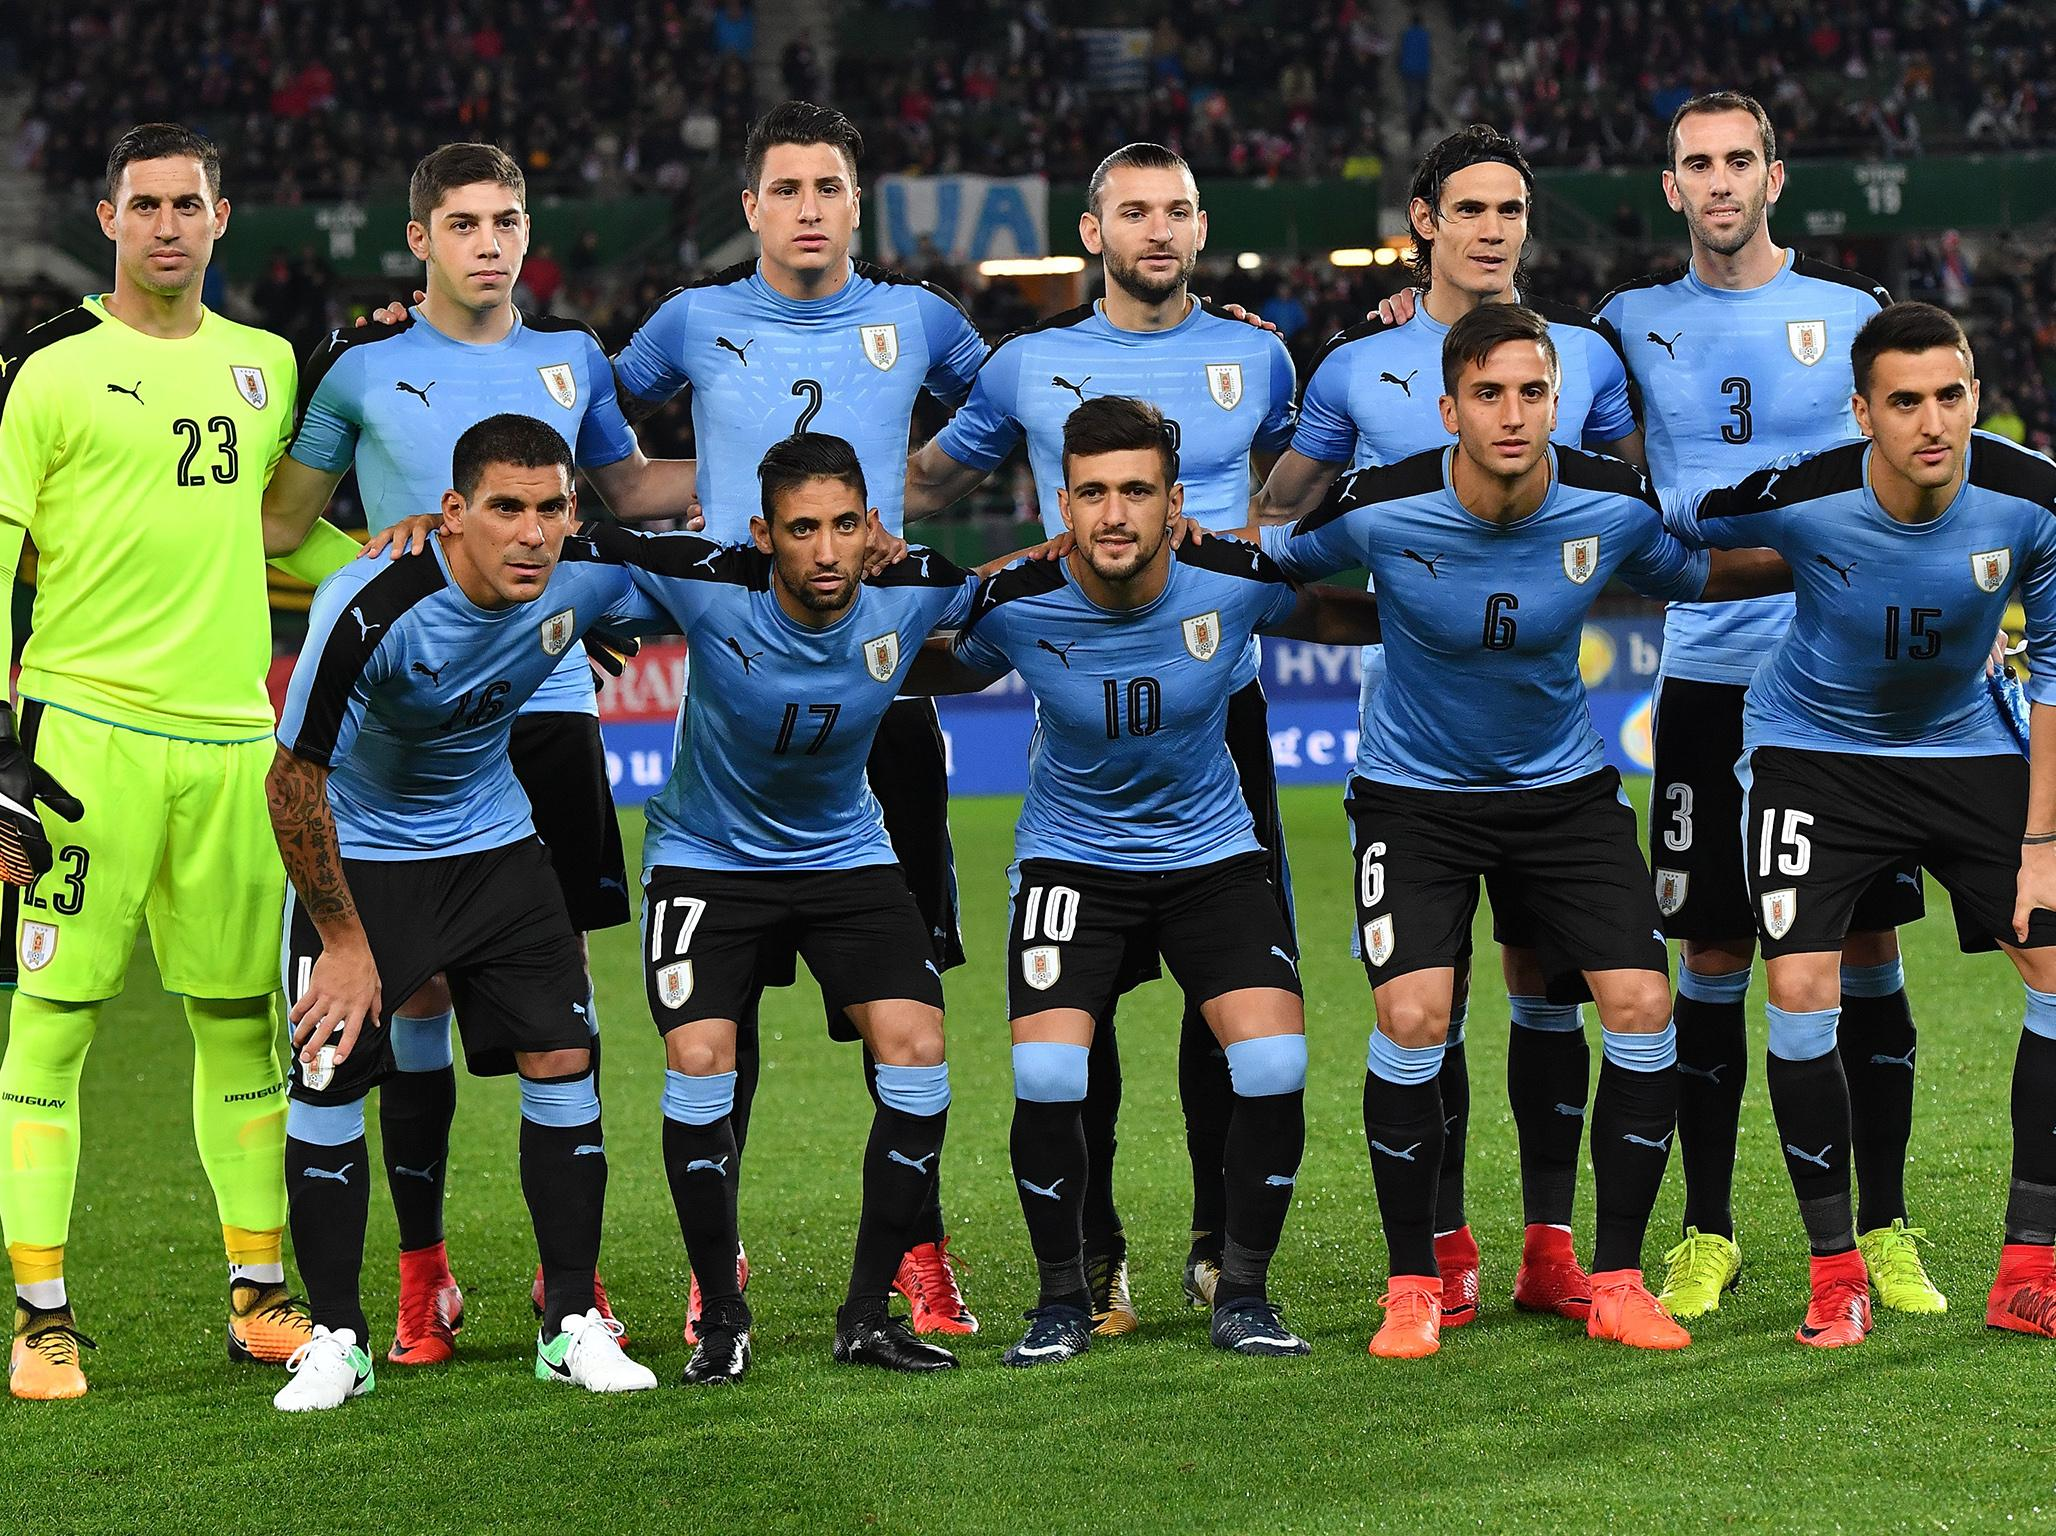 Uruguay World Cup Squad Guide Full Fixtures Group Ones To Watch Odds And More The Independent